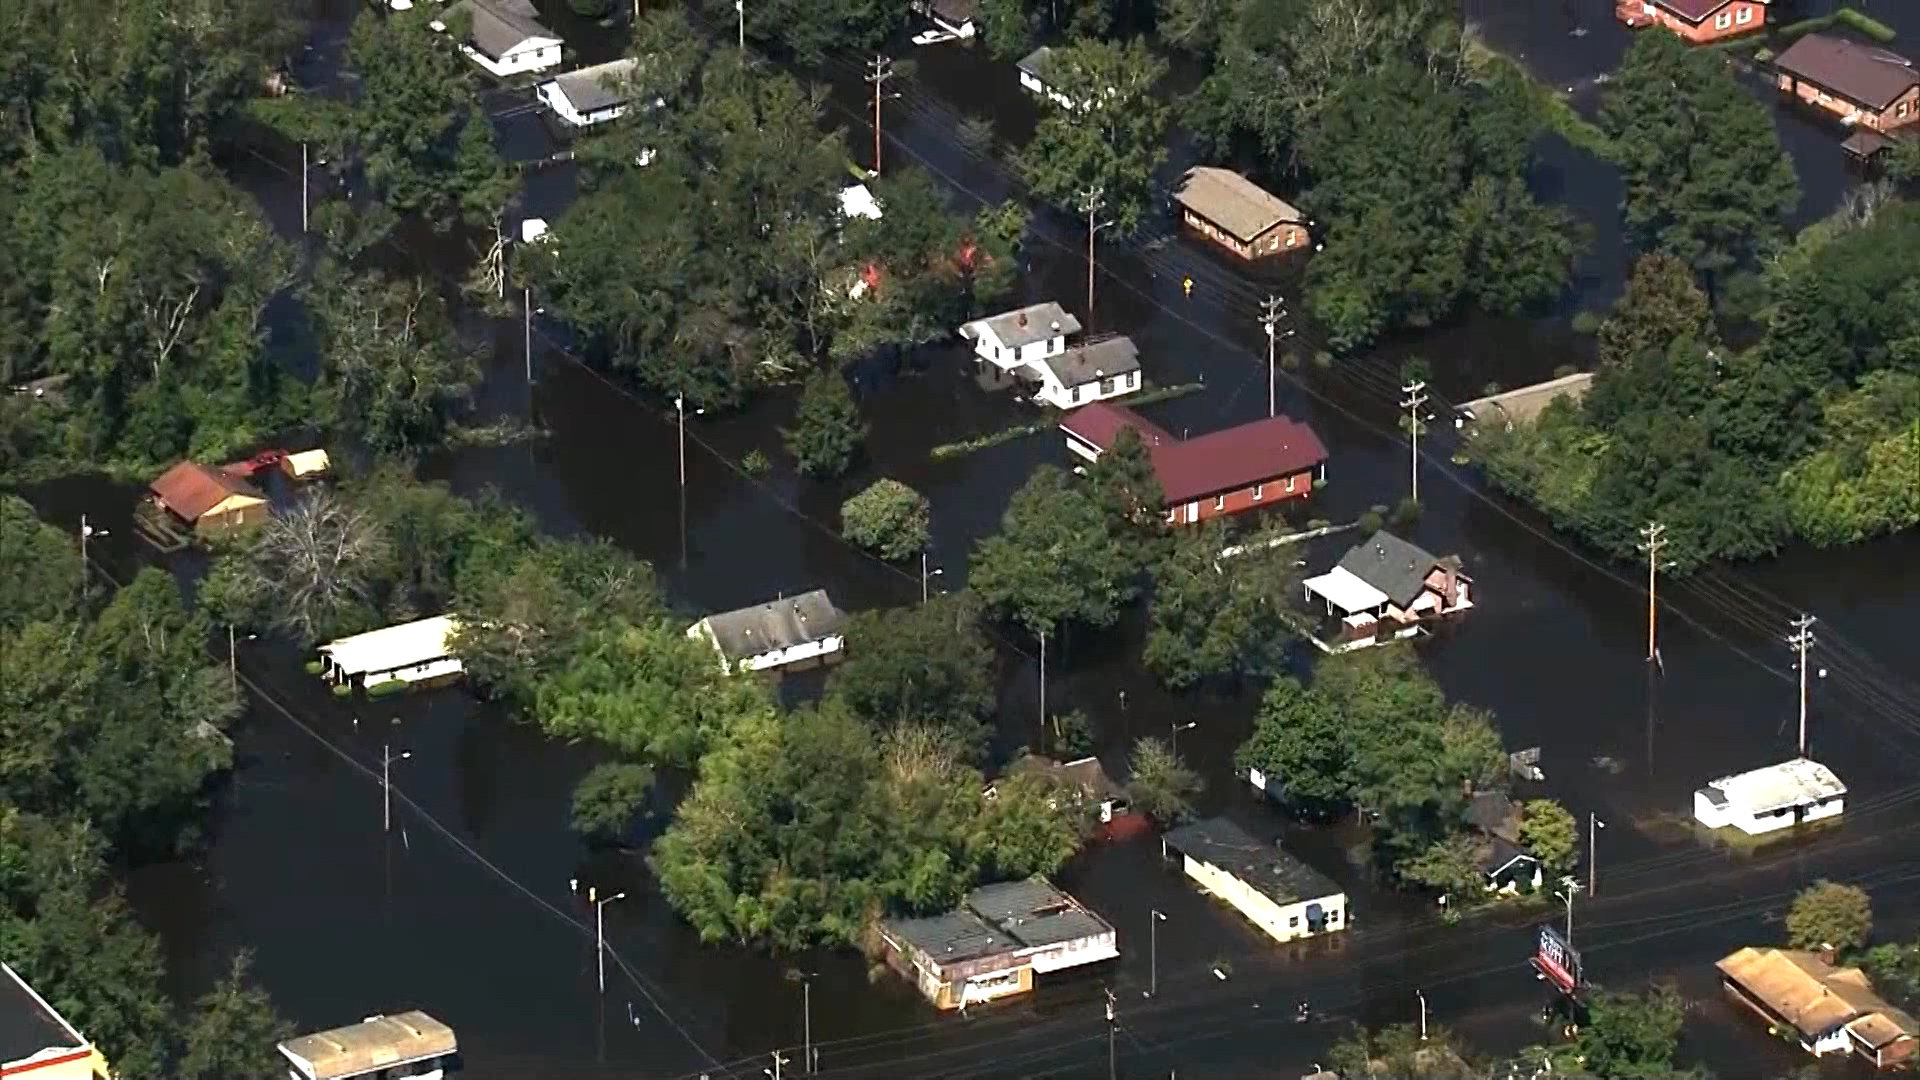 100 evacuated from flooded N. Carolina town